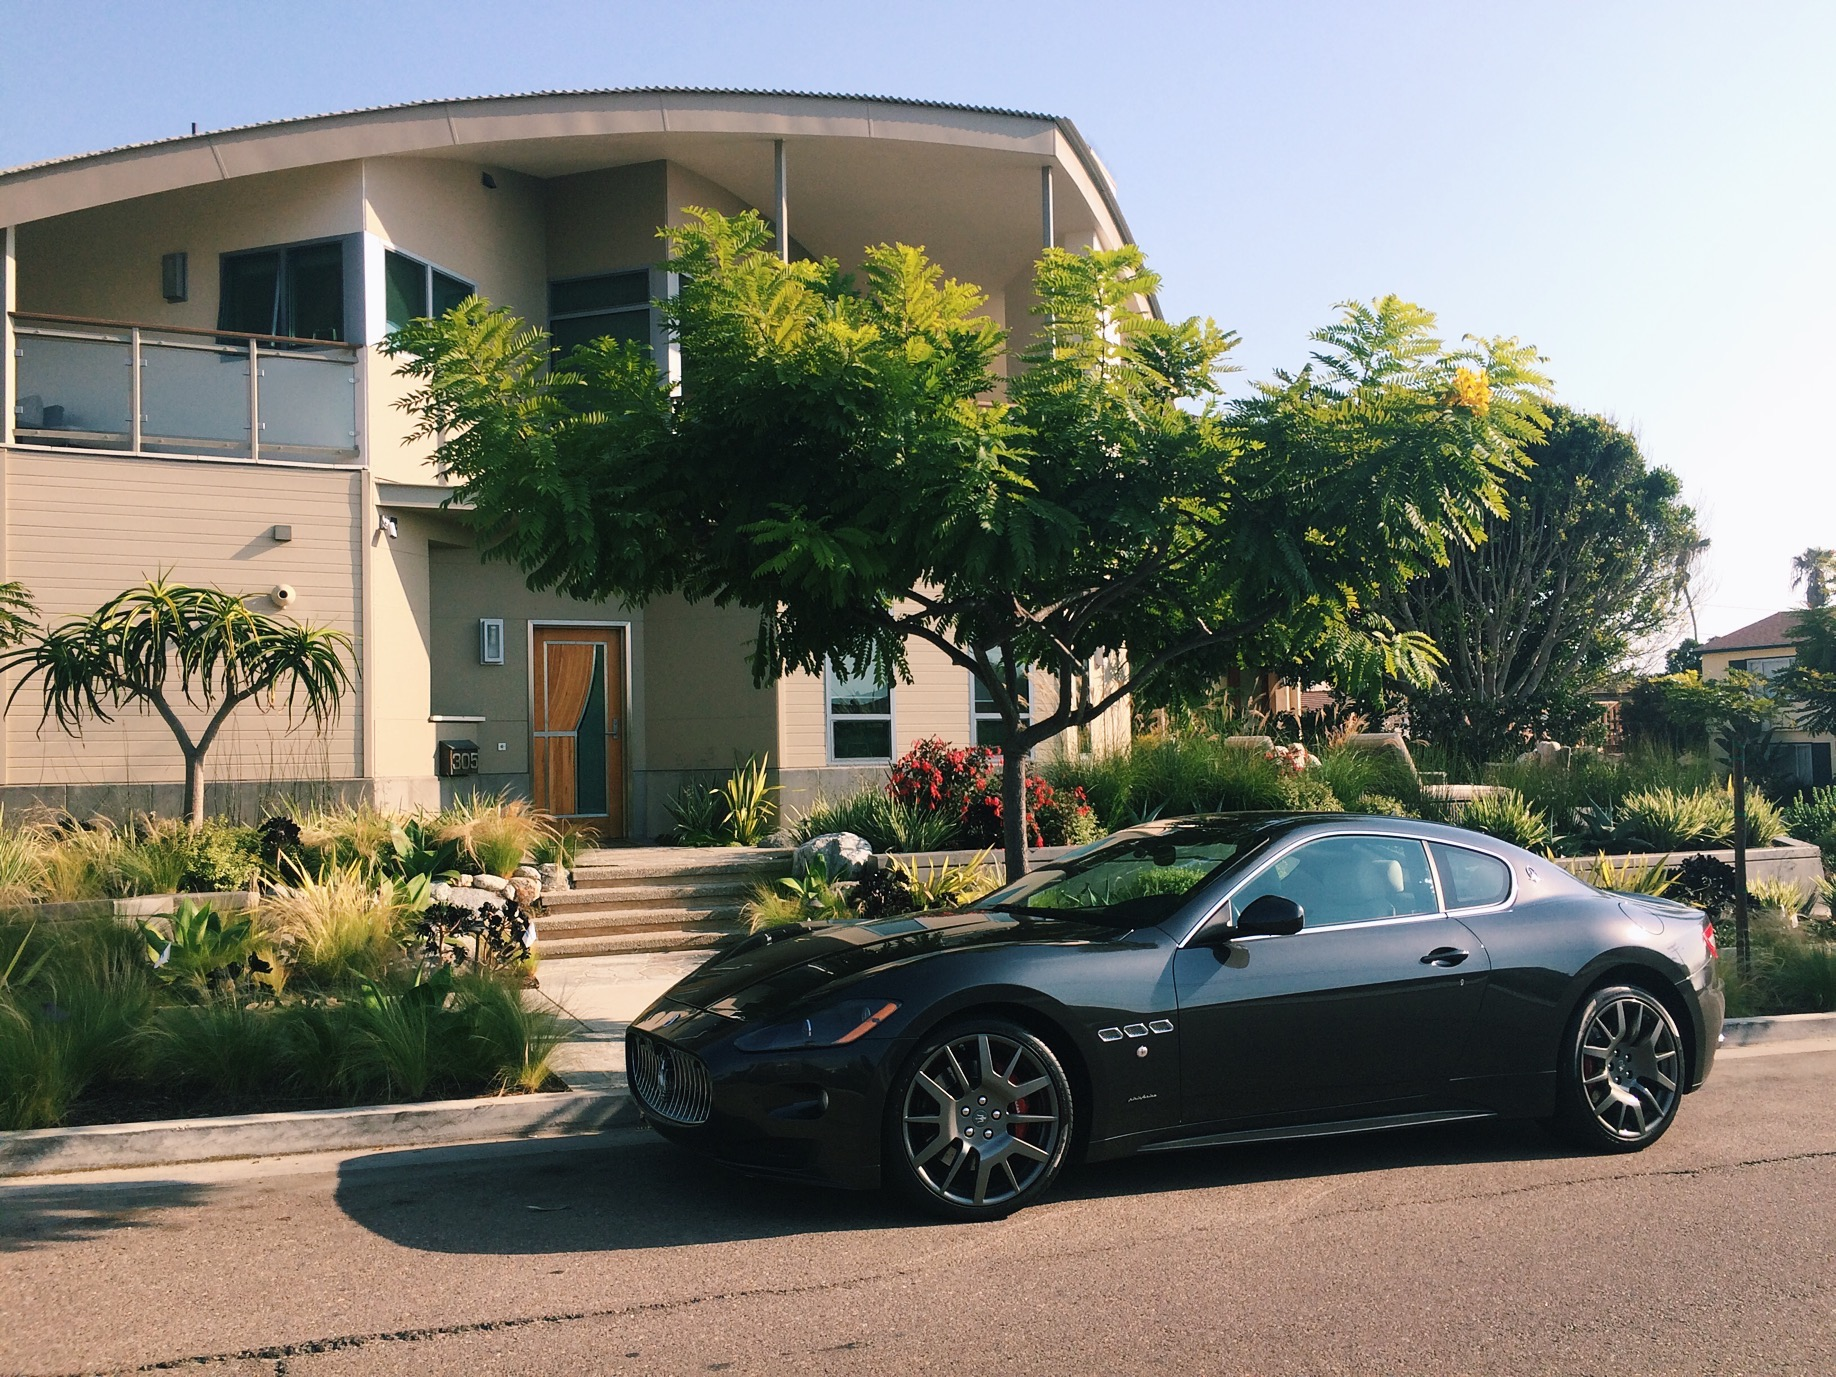 This fucker stopped me too, the combination of the Maserati and the house did it for me.